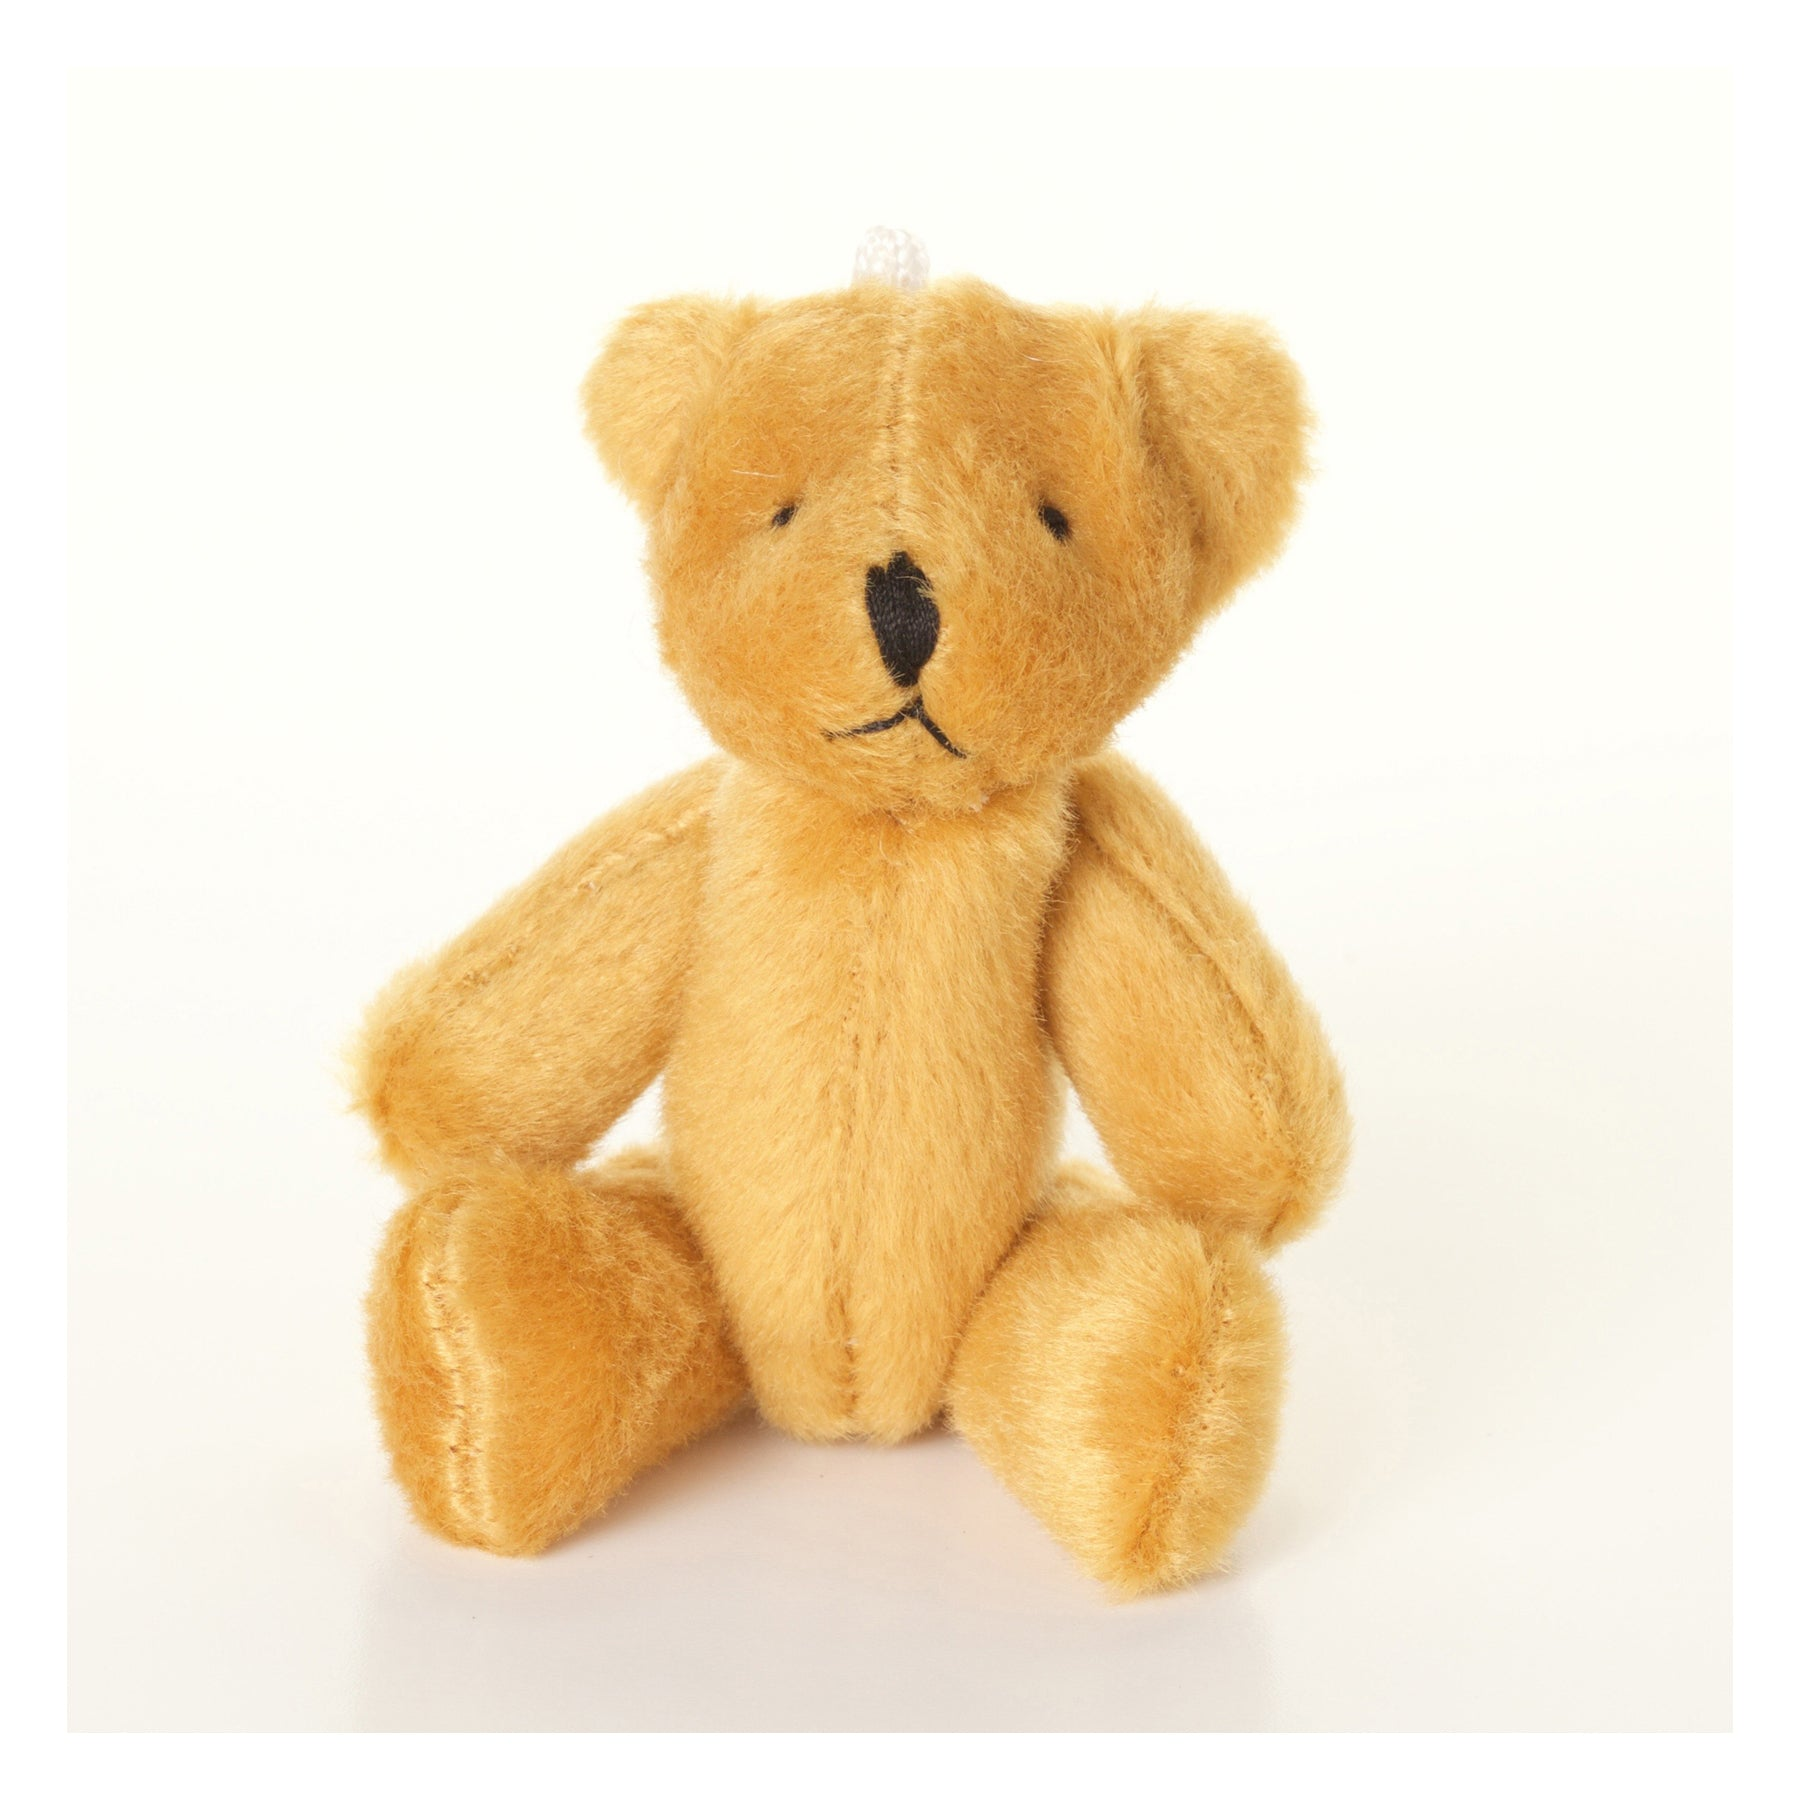 Small BROWN Teddy Bears X 90 - Cute Soft Adorable